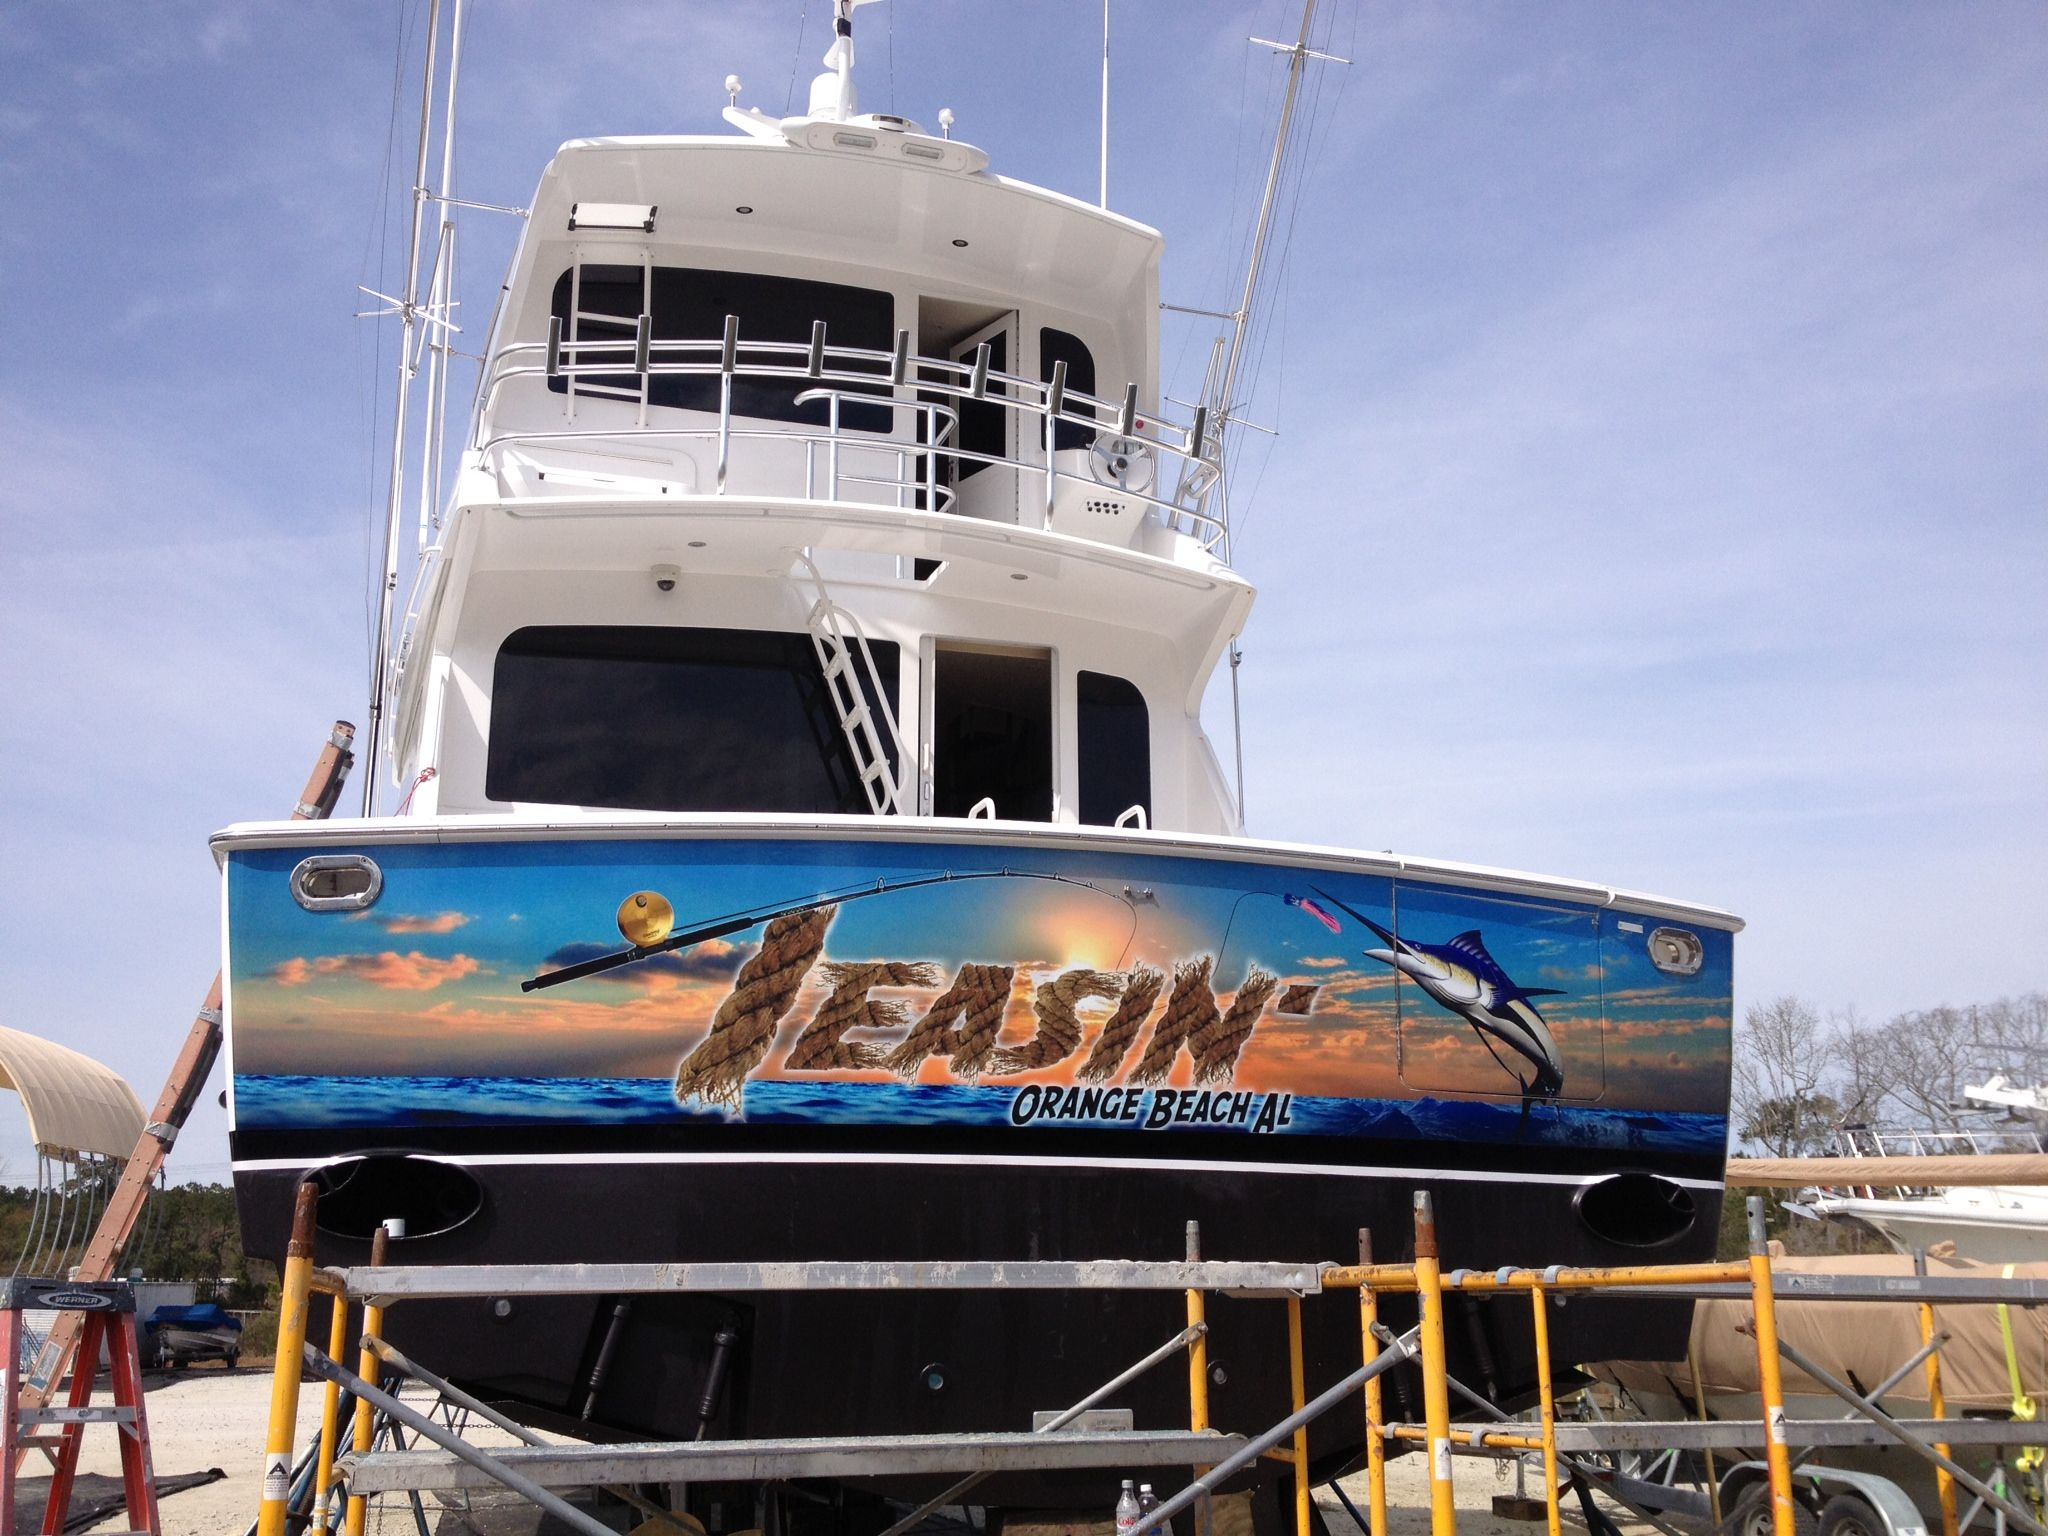 Teasin Boat Wrap CAR BOAT VINYL WRAPS Pinterest Boat - Sporting boat decalsbest boat wraps custom vinyl images on pinterest boat wraps